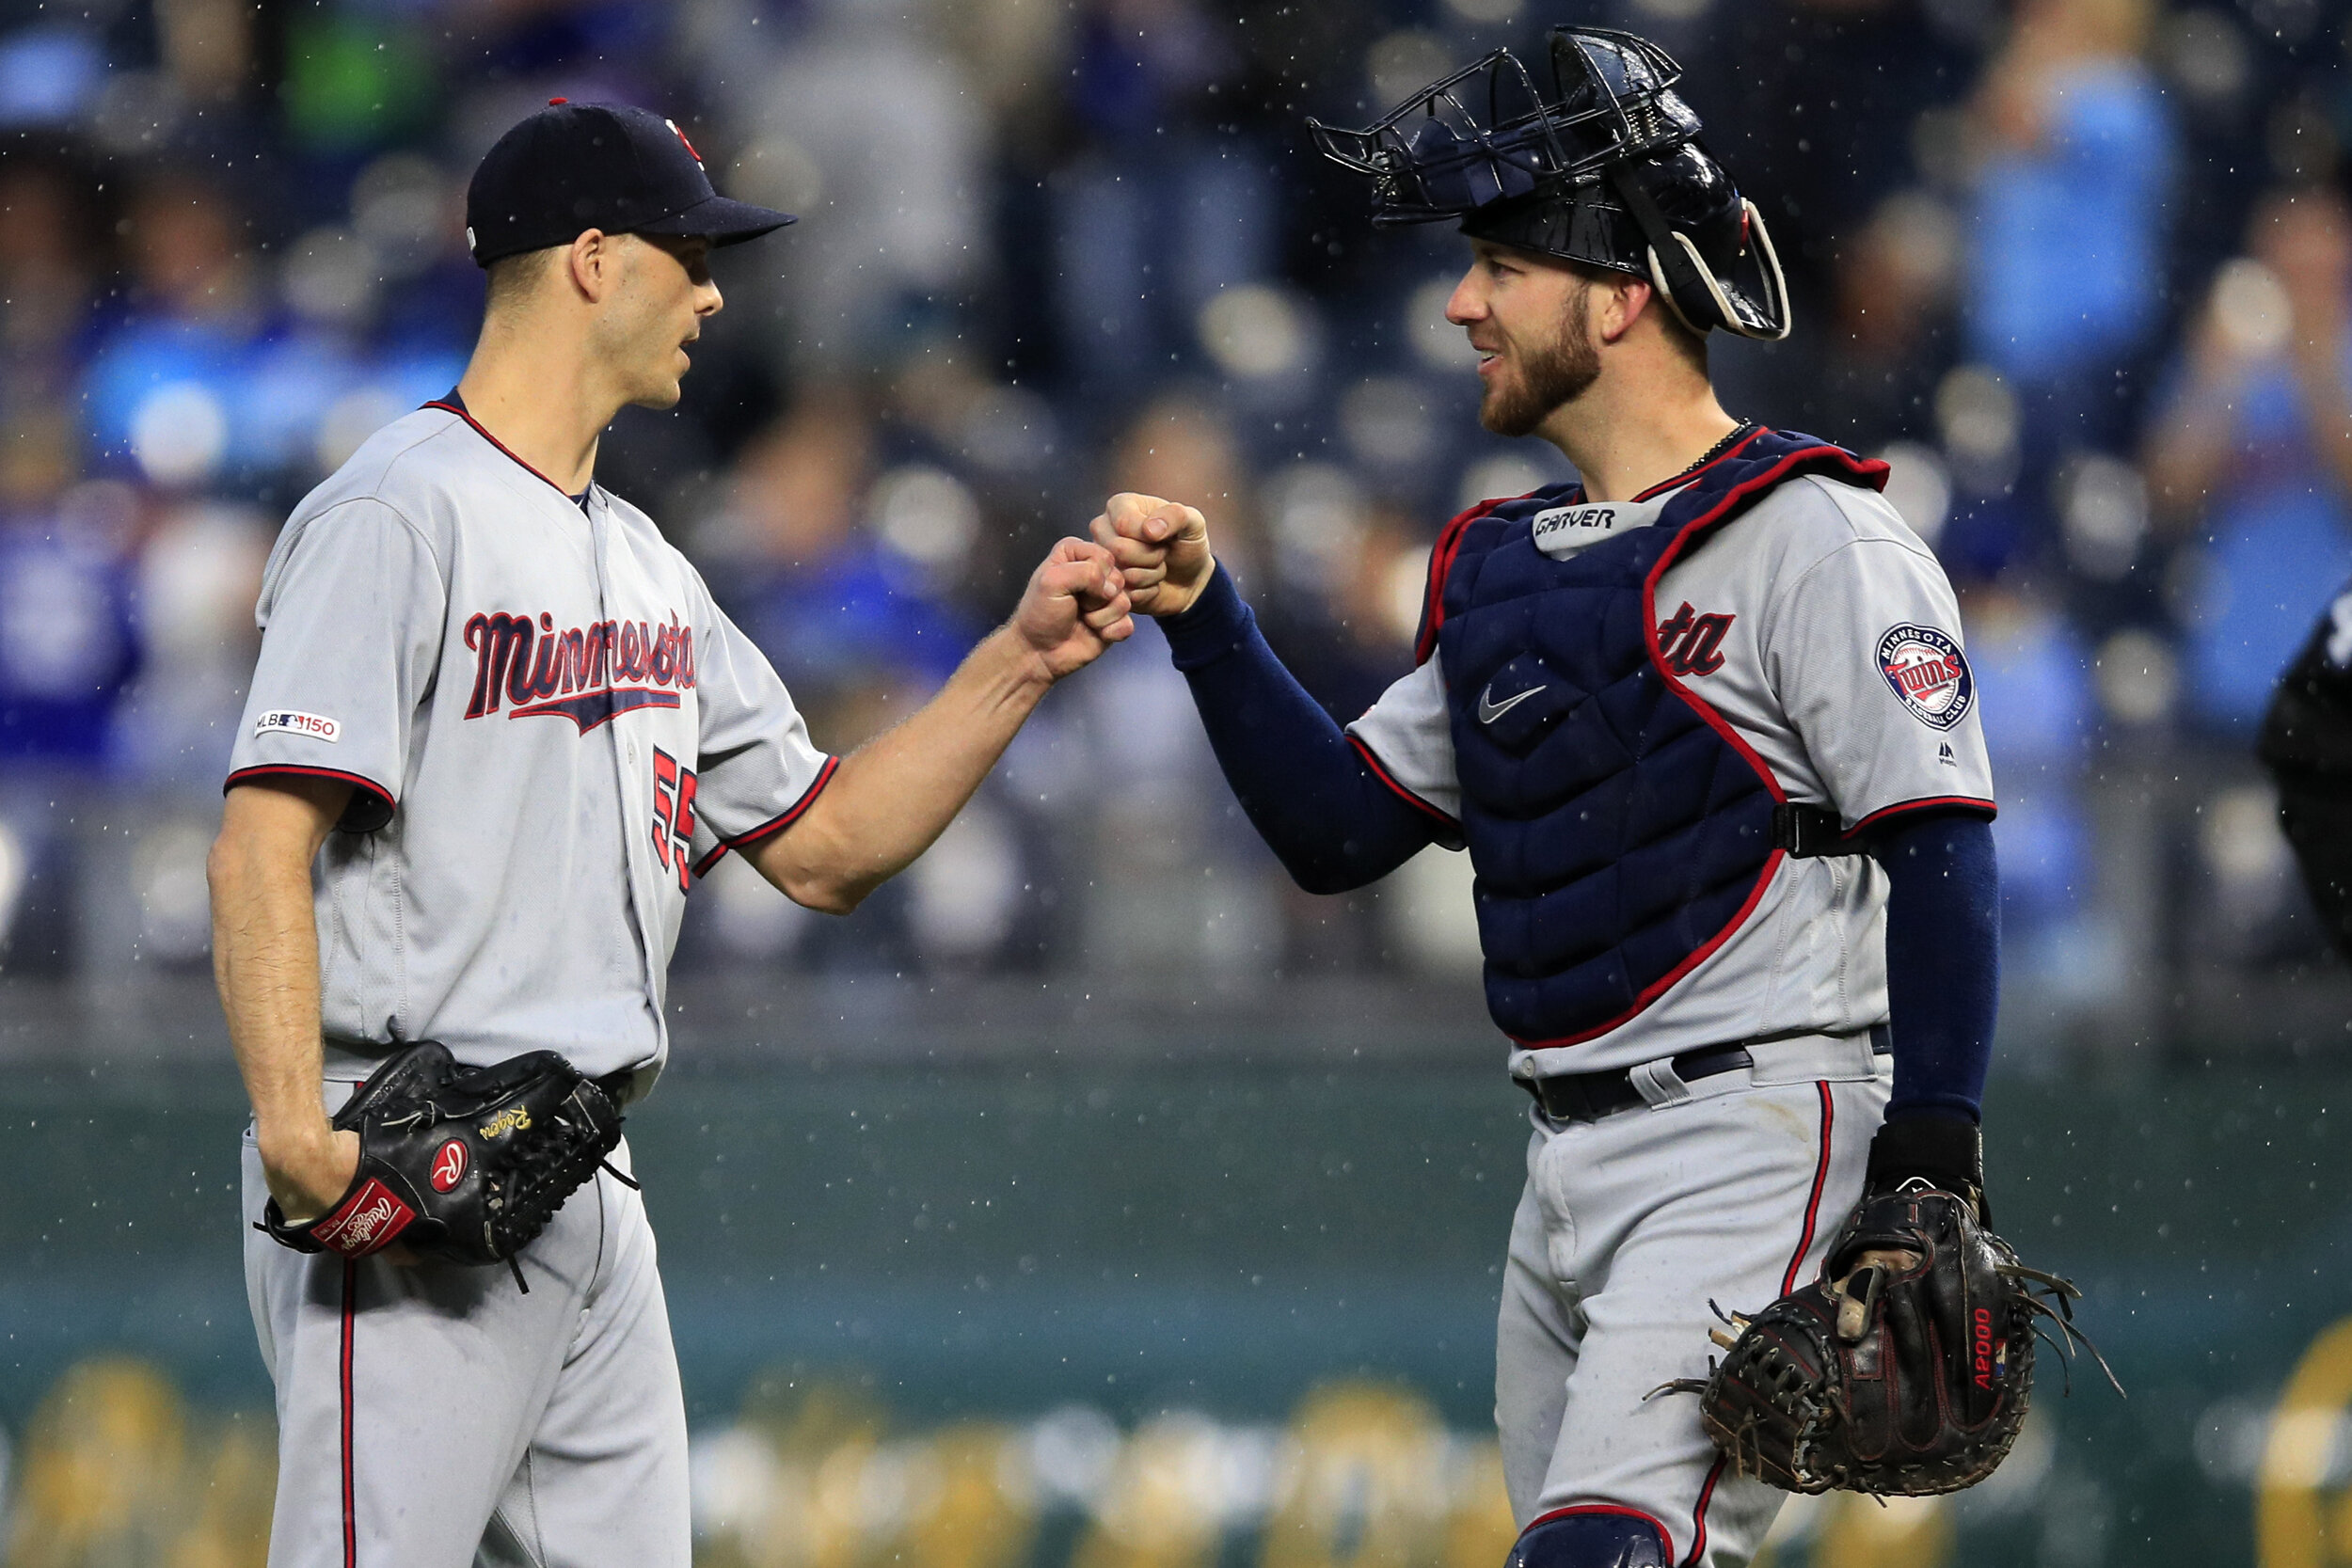 The Twins were a tough draw for the Yankees in the ALDS. They have strong pitching and a solid rotation but when the Yanks are on top of their game no team can keep up with them.  Photo from The Associated Press.